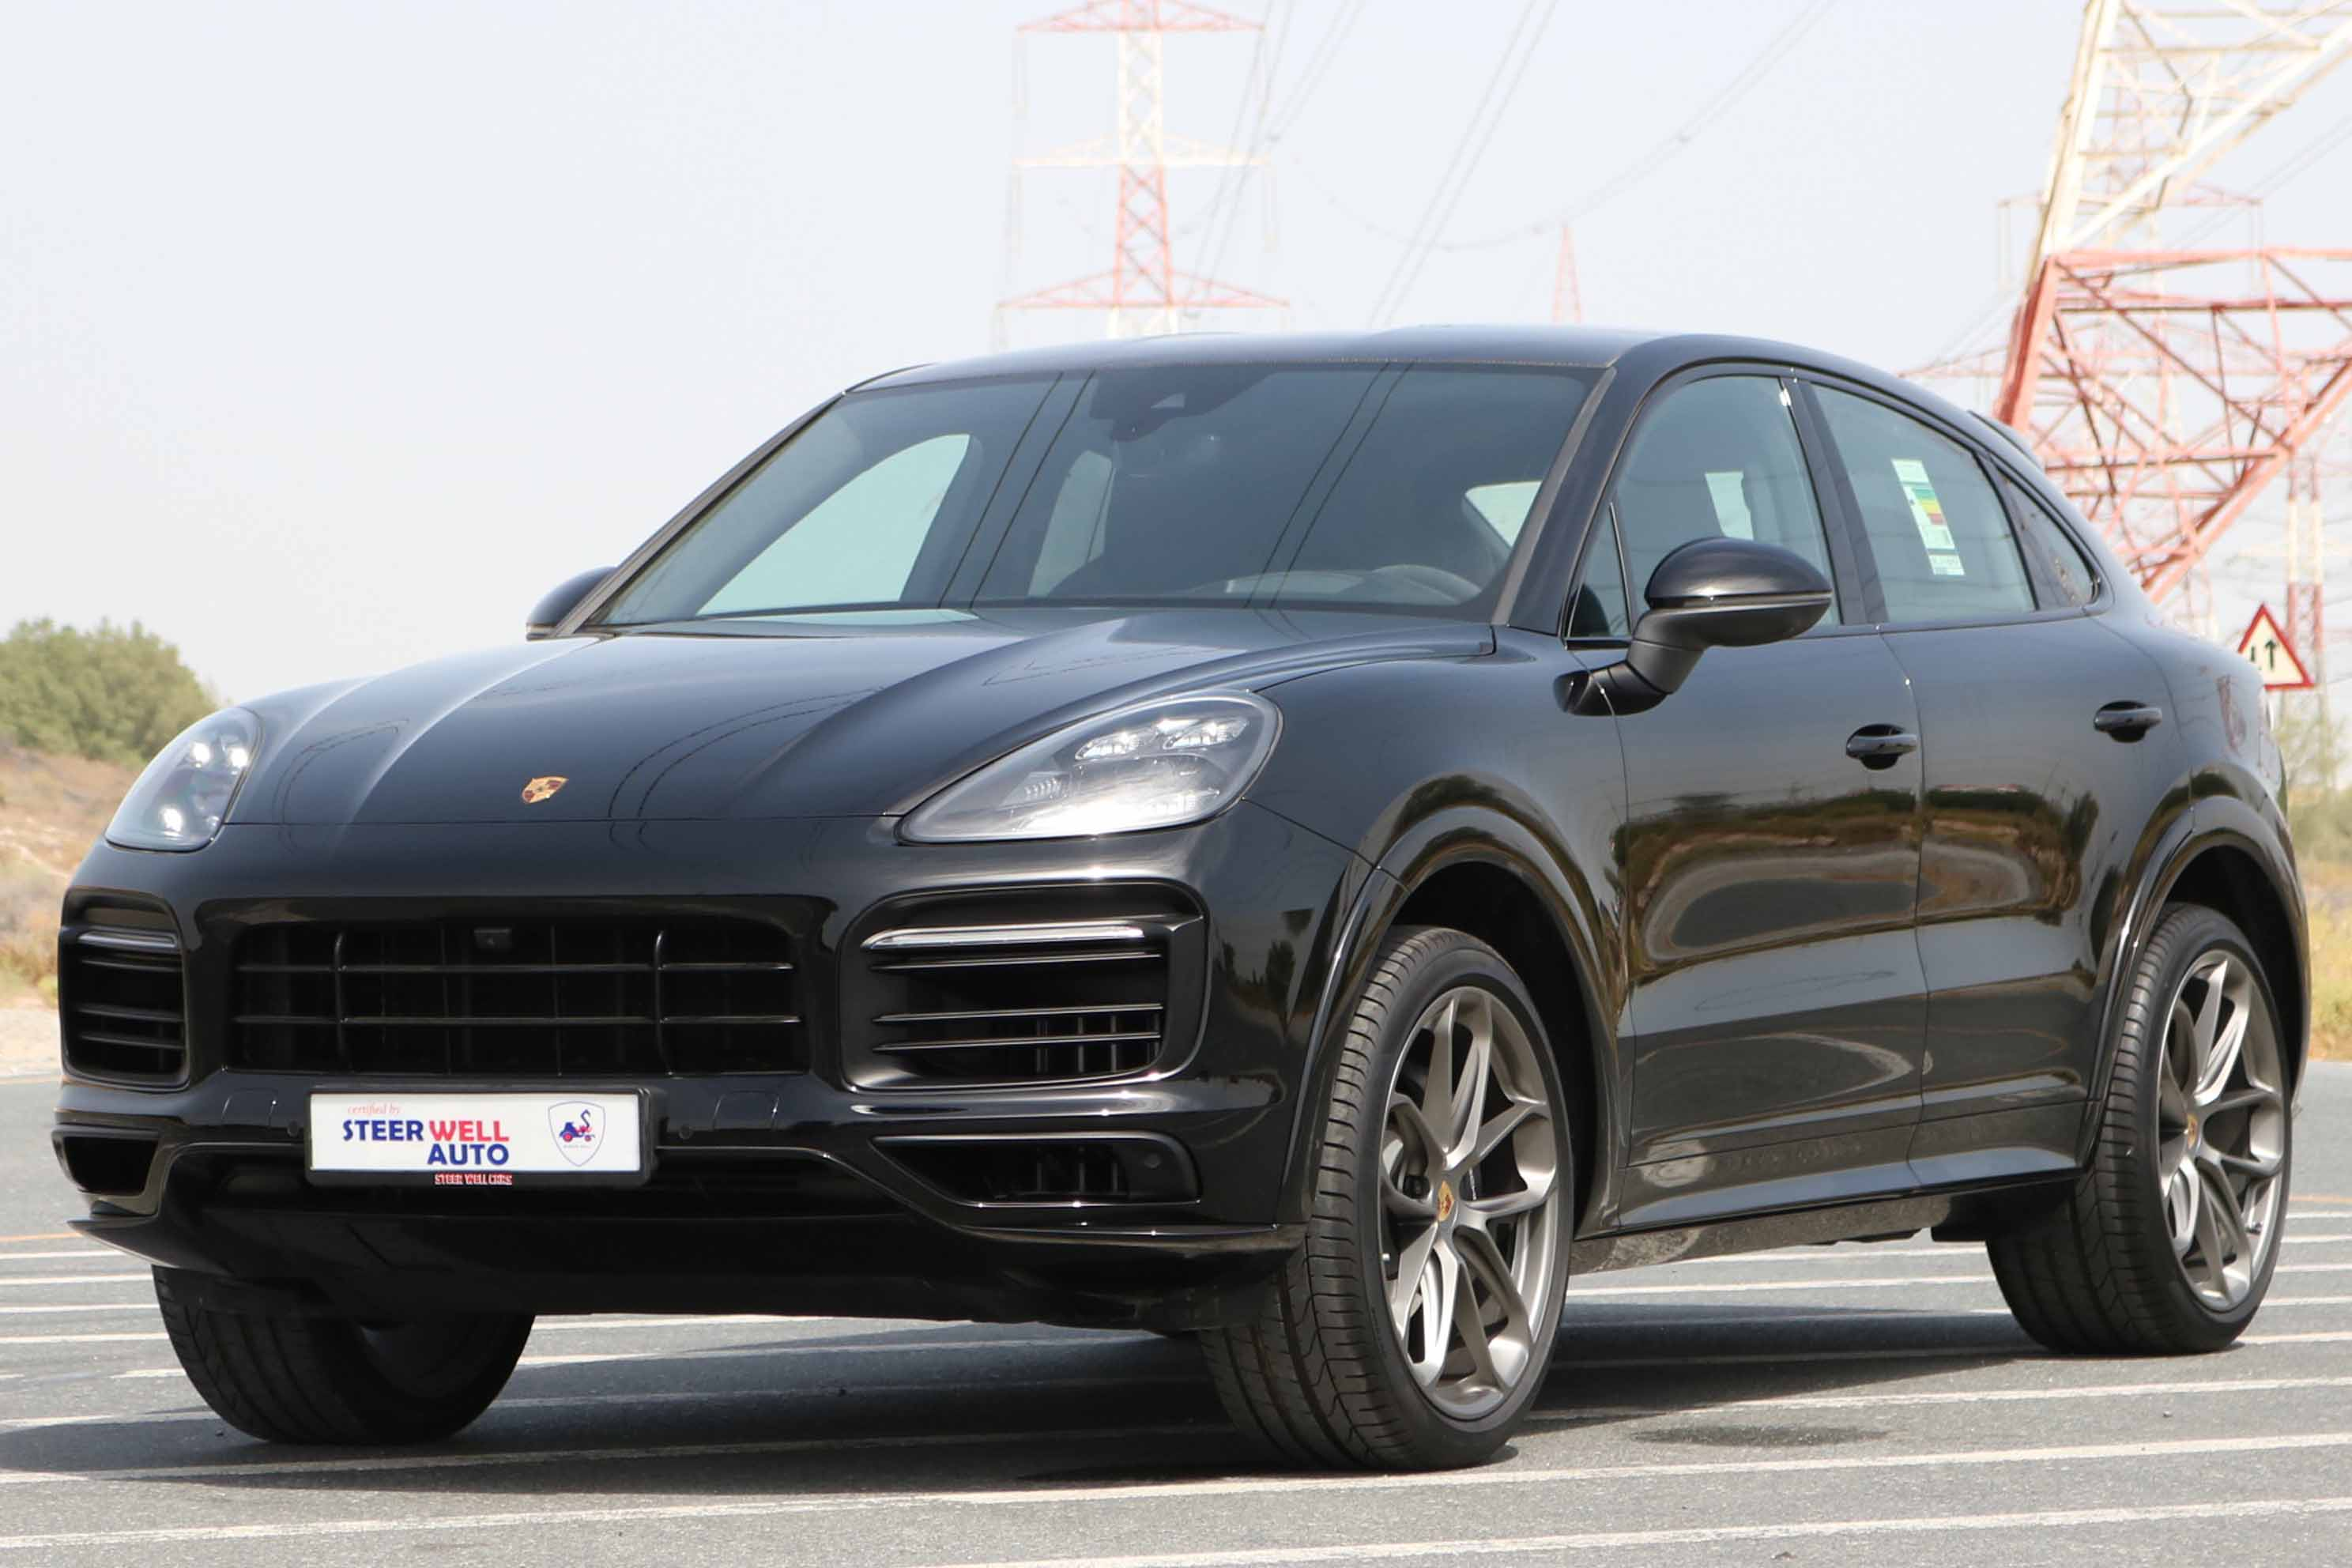 PORSCHE CAYENNE COUPE WITH SPORT KIT 2 YEARS WARRANTY